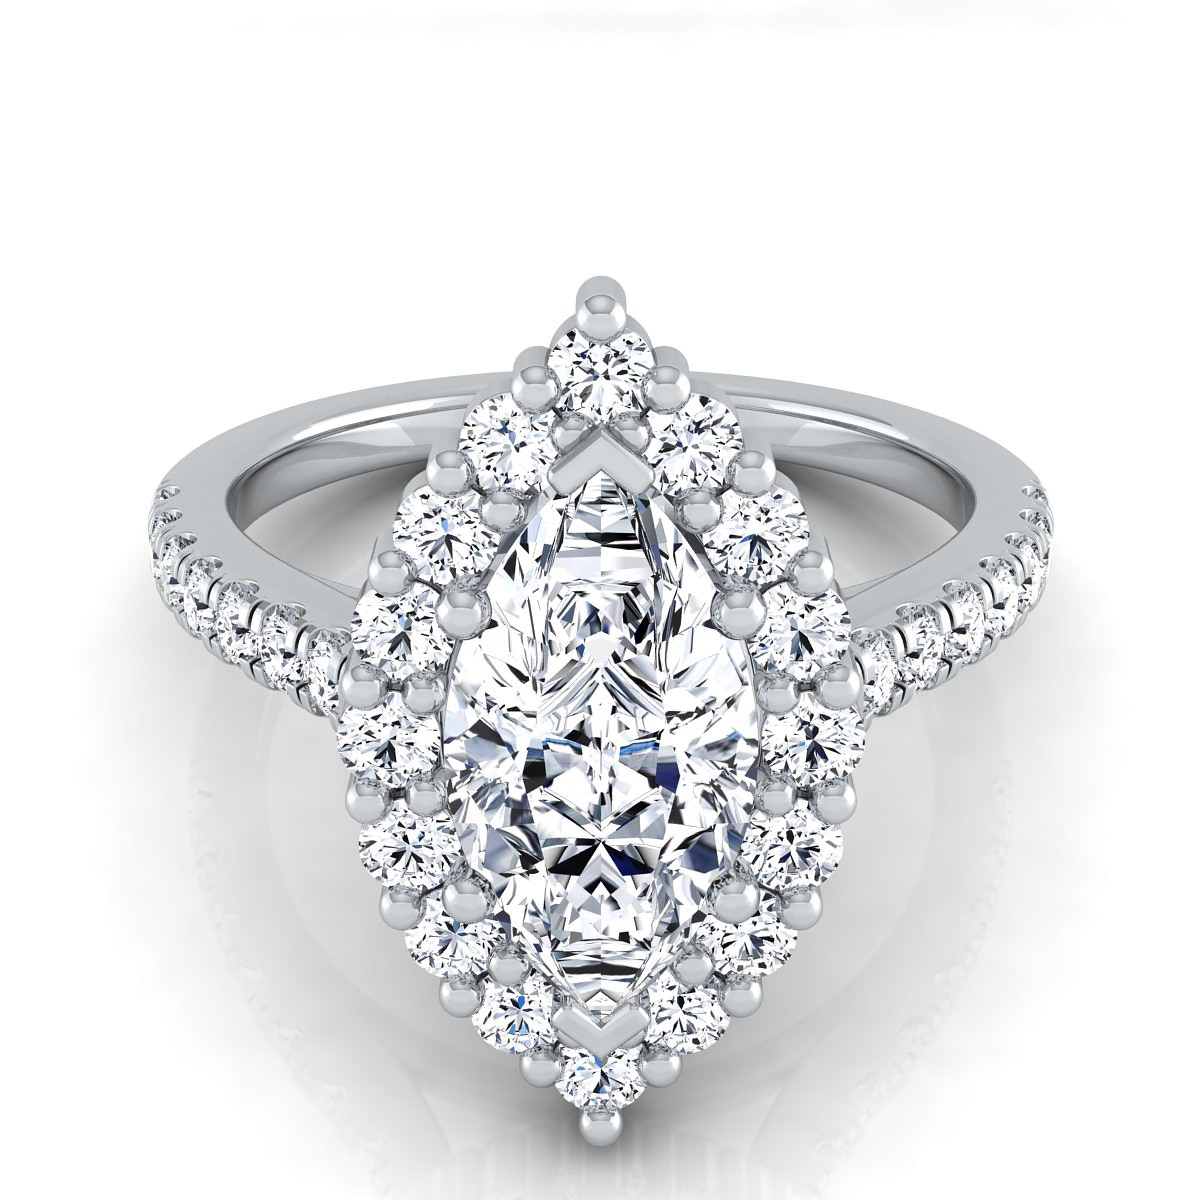 This marquise cut engagement ring features a shared prong halo design and a platinum shank covered in diamonds.